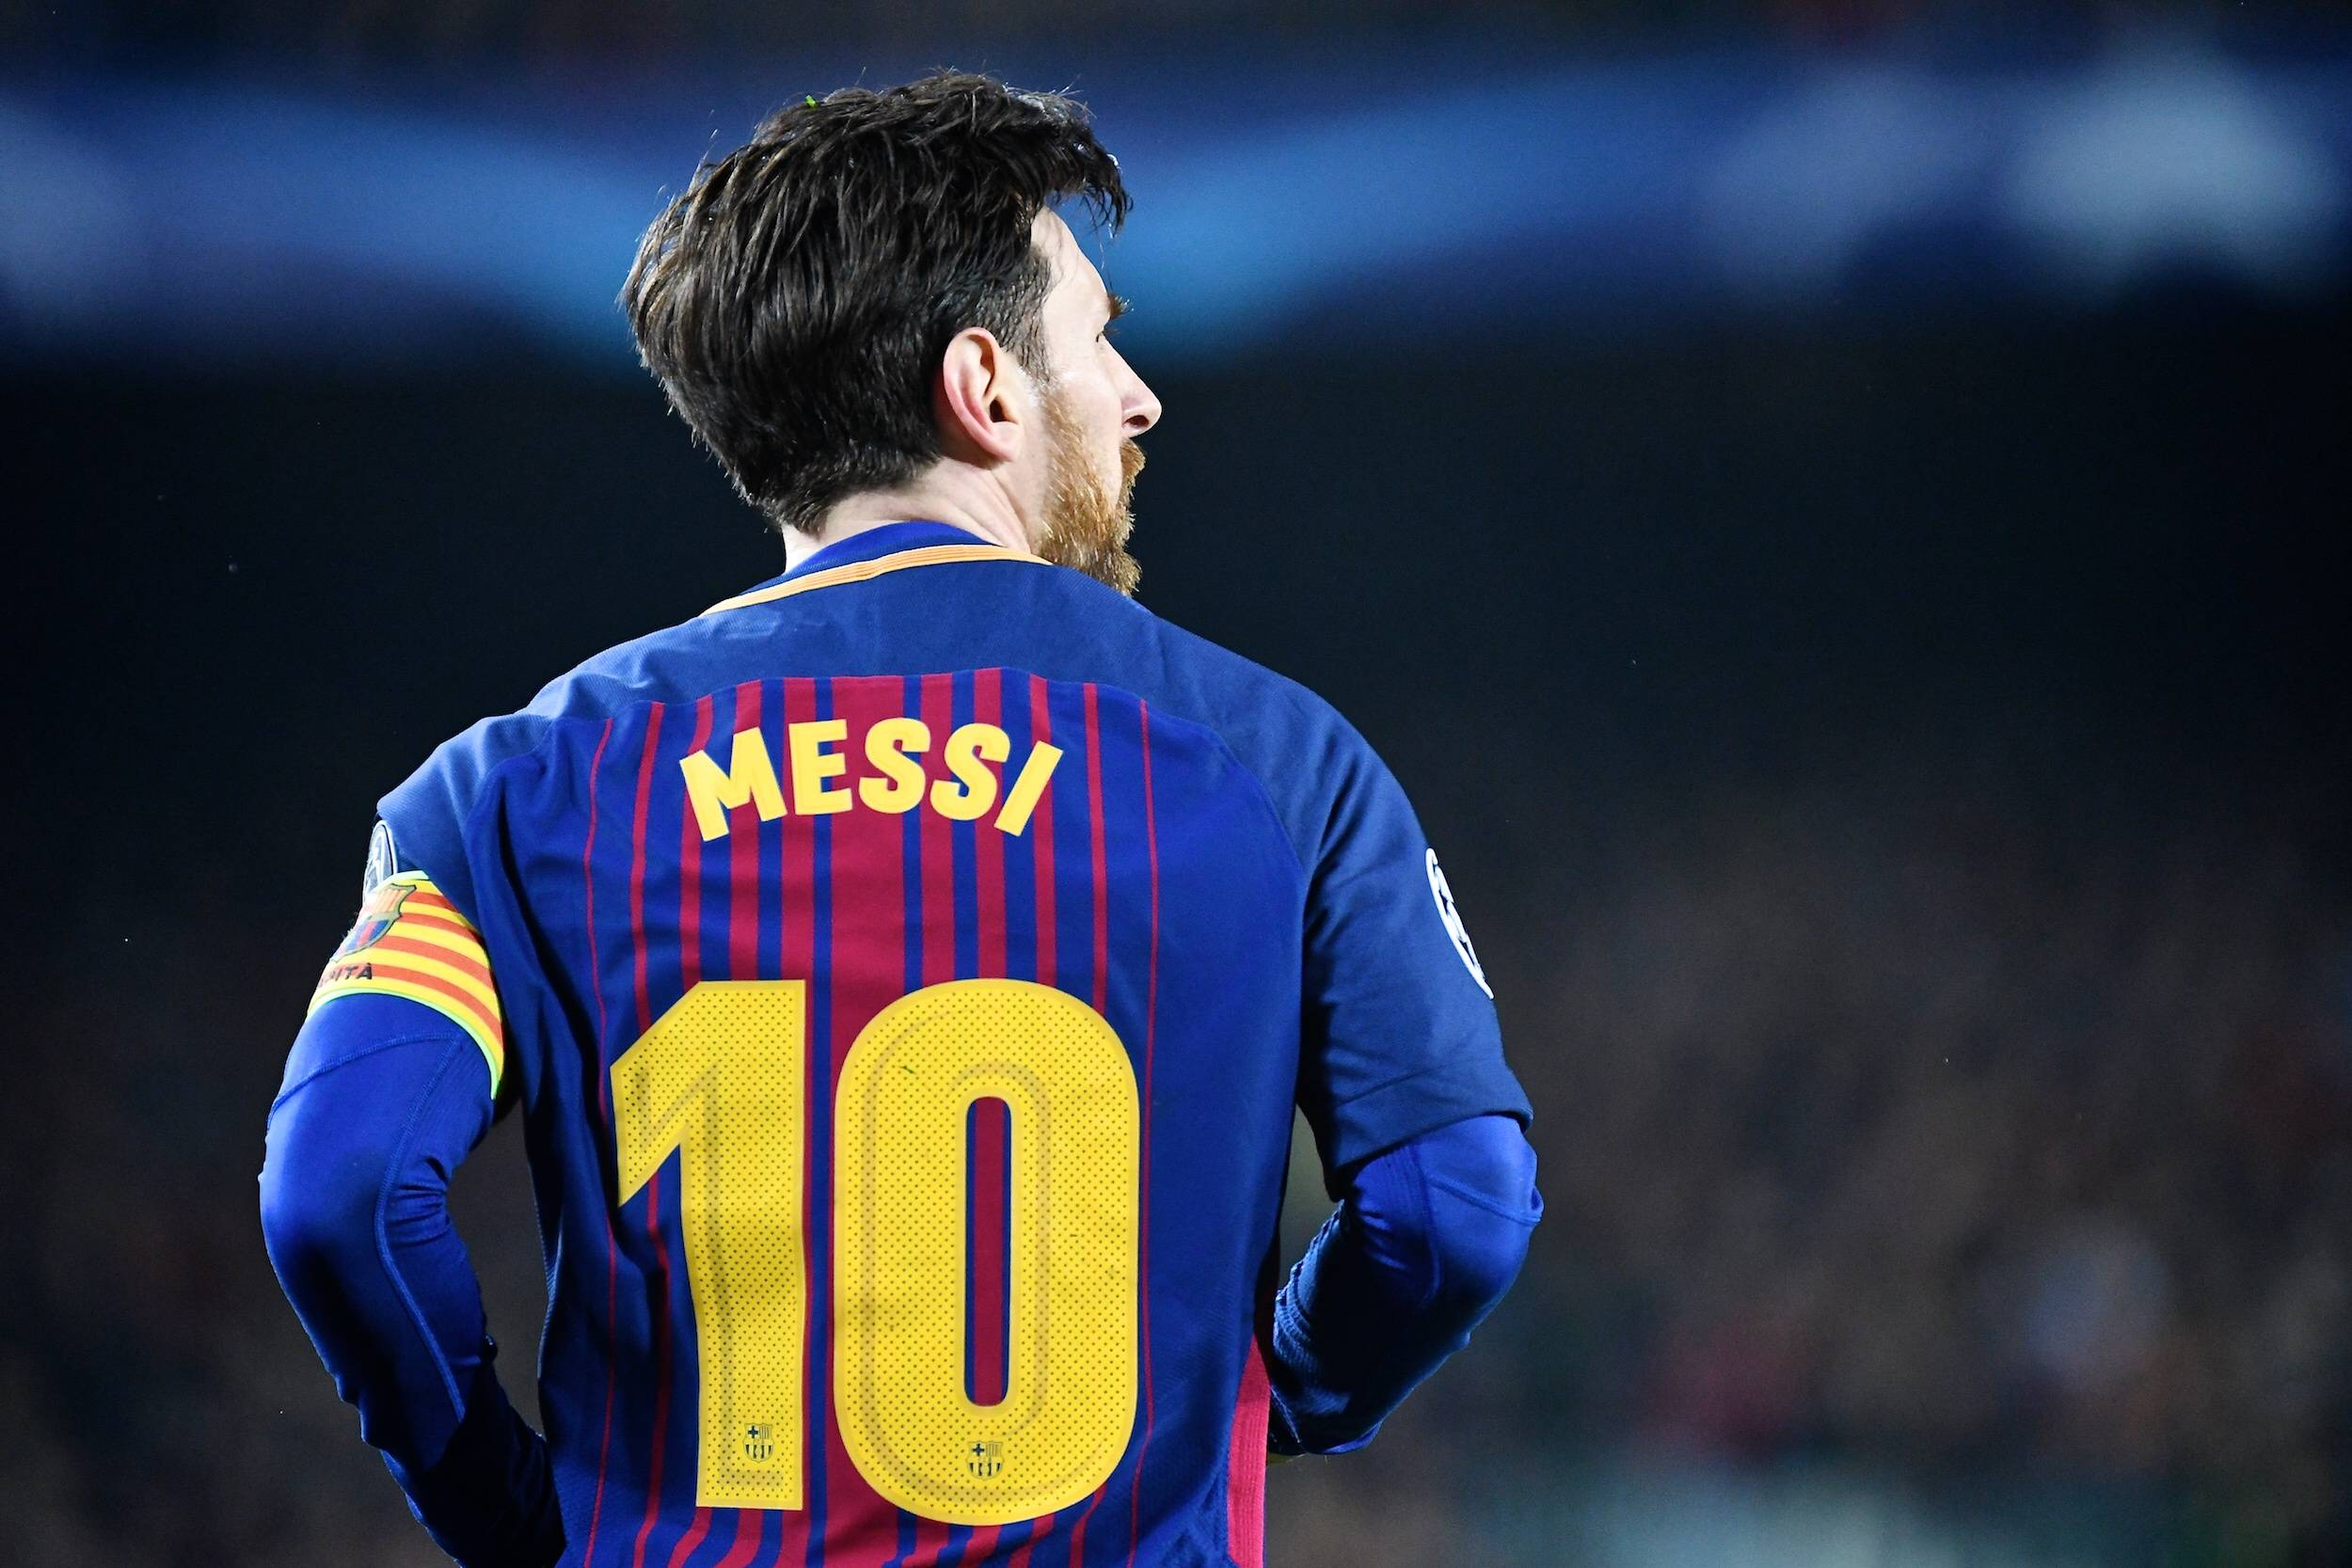 Lionel Messi in action for Barcelona against Chelsea.